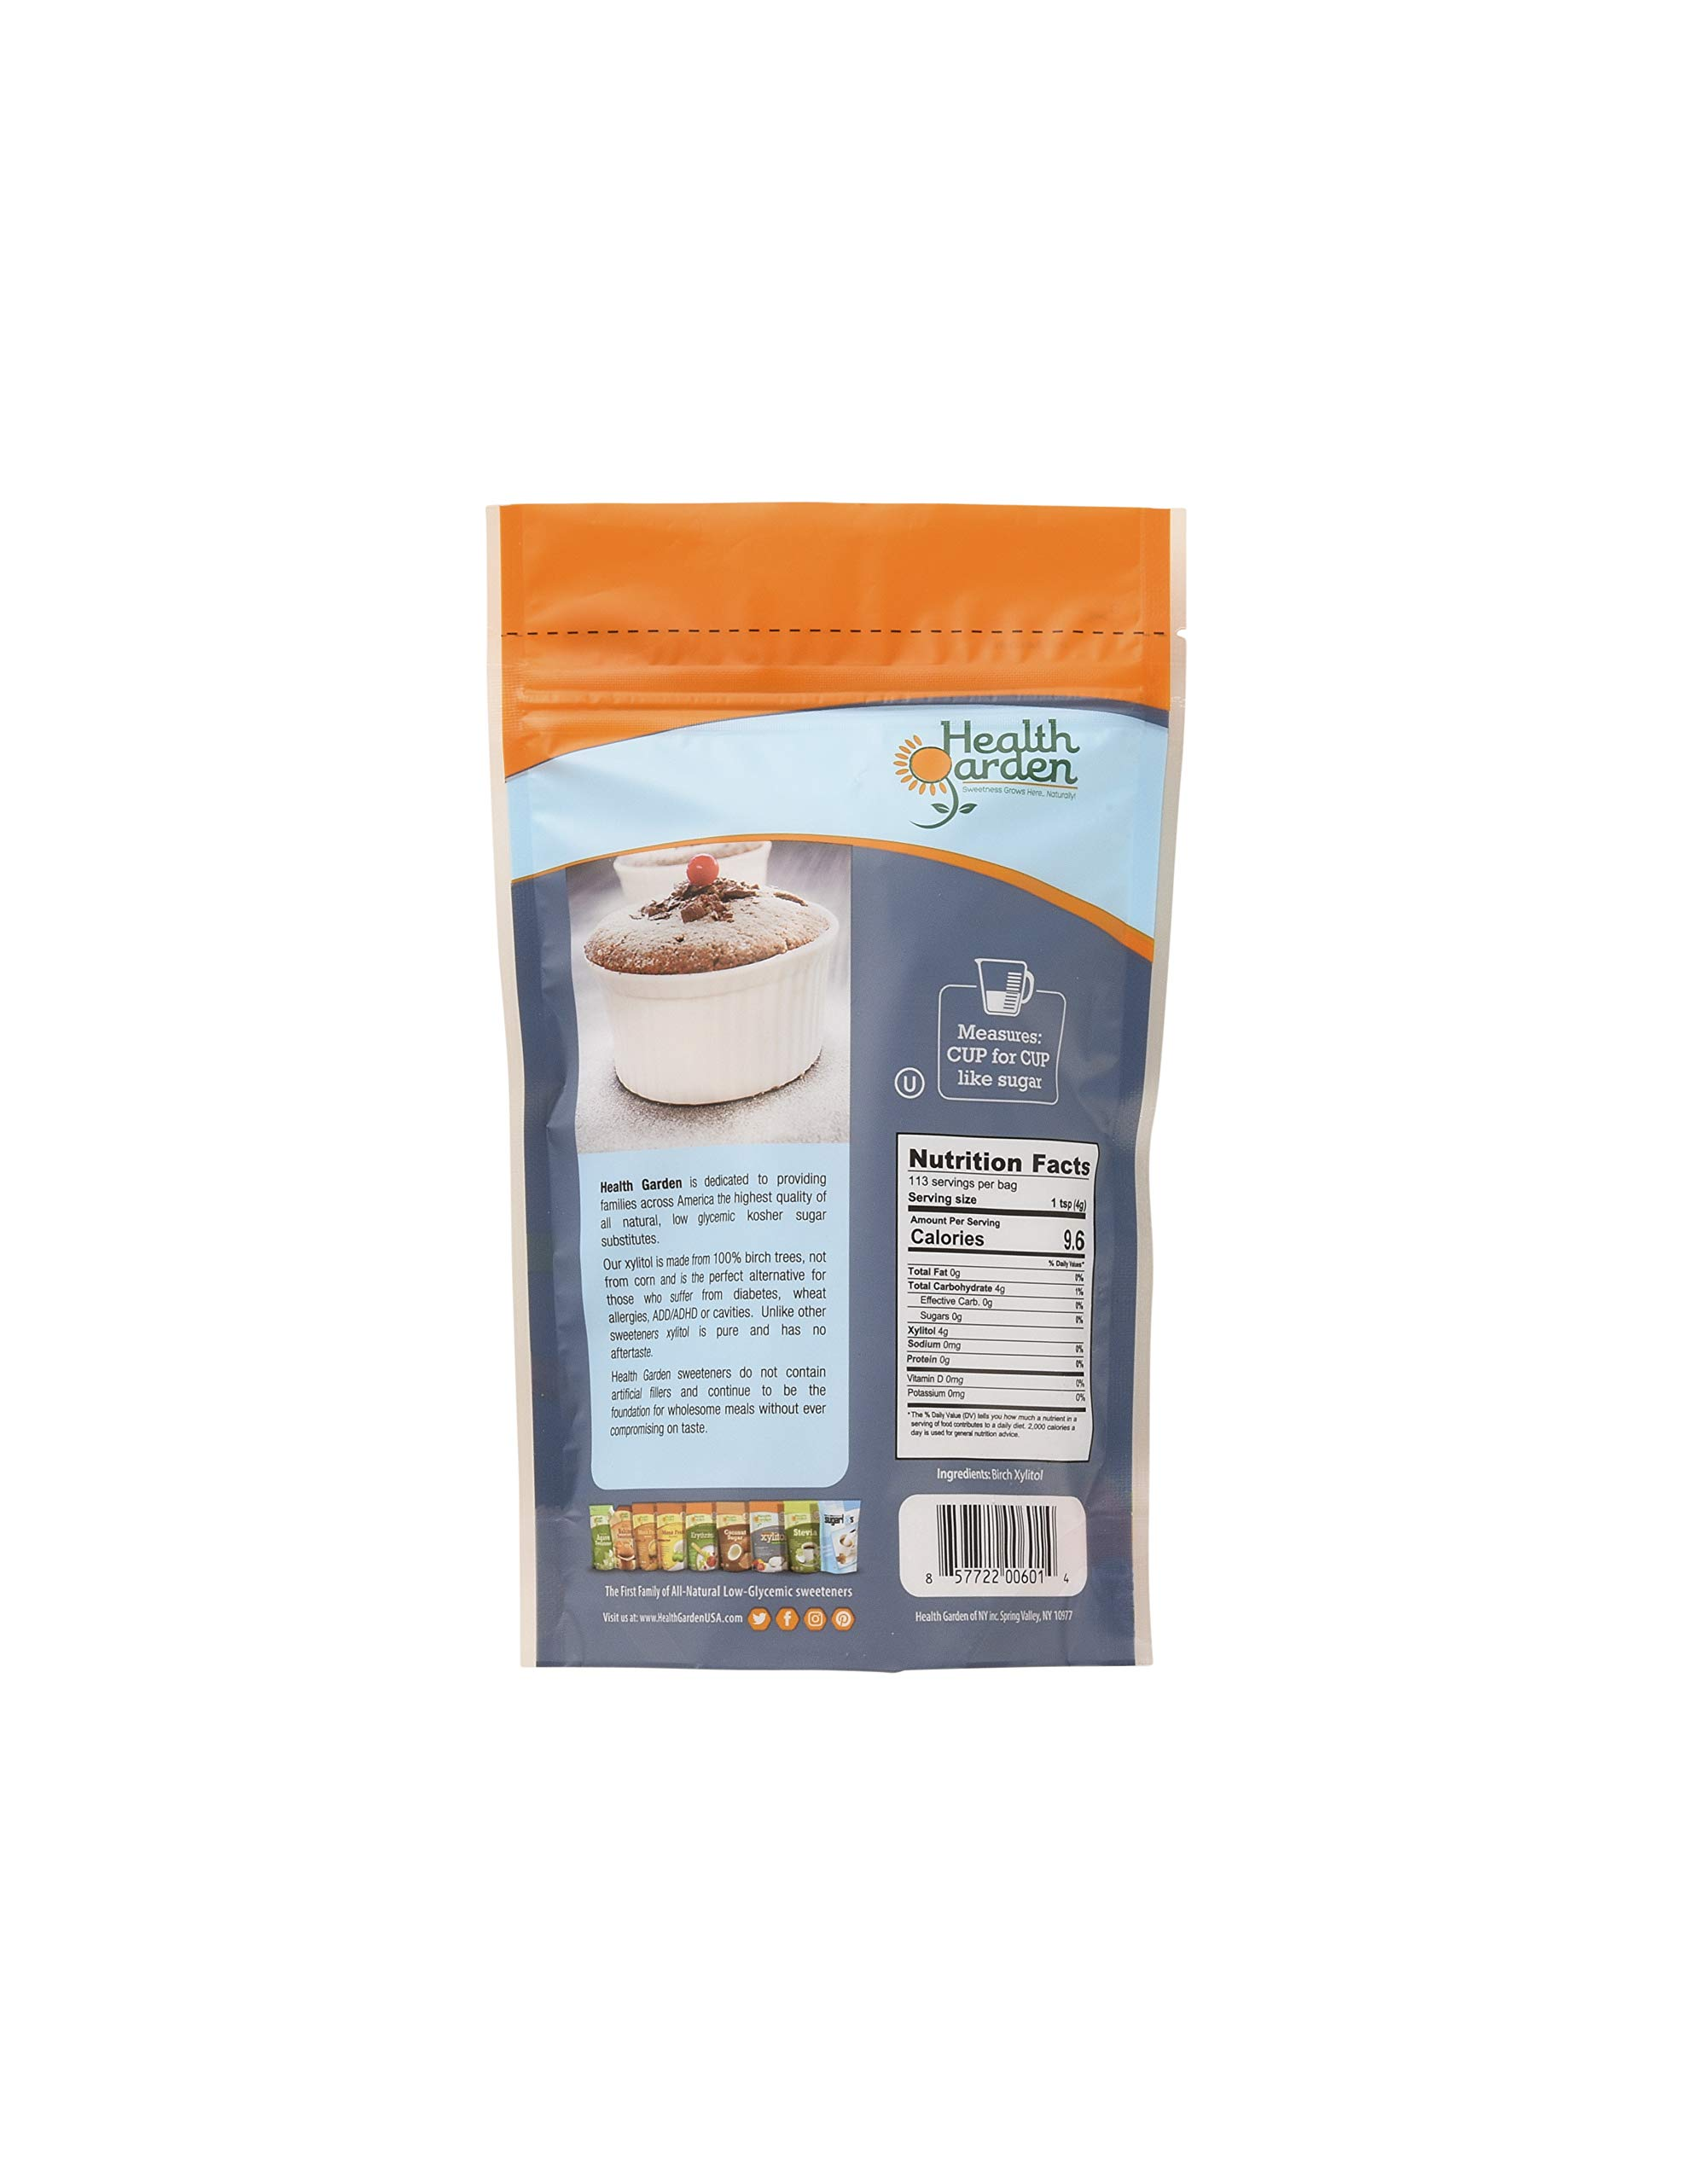 Health Garden Birch Xylitol Sugar Free Sweetener, All Natural Non GMO, Not from Corn by HEALTH GARDEN (Image #2)